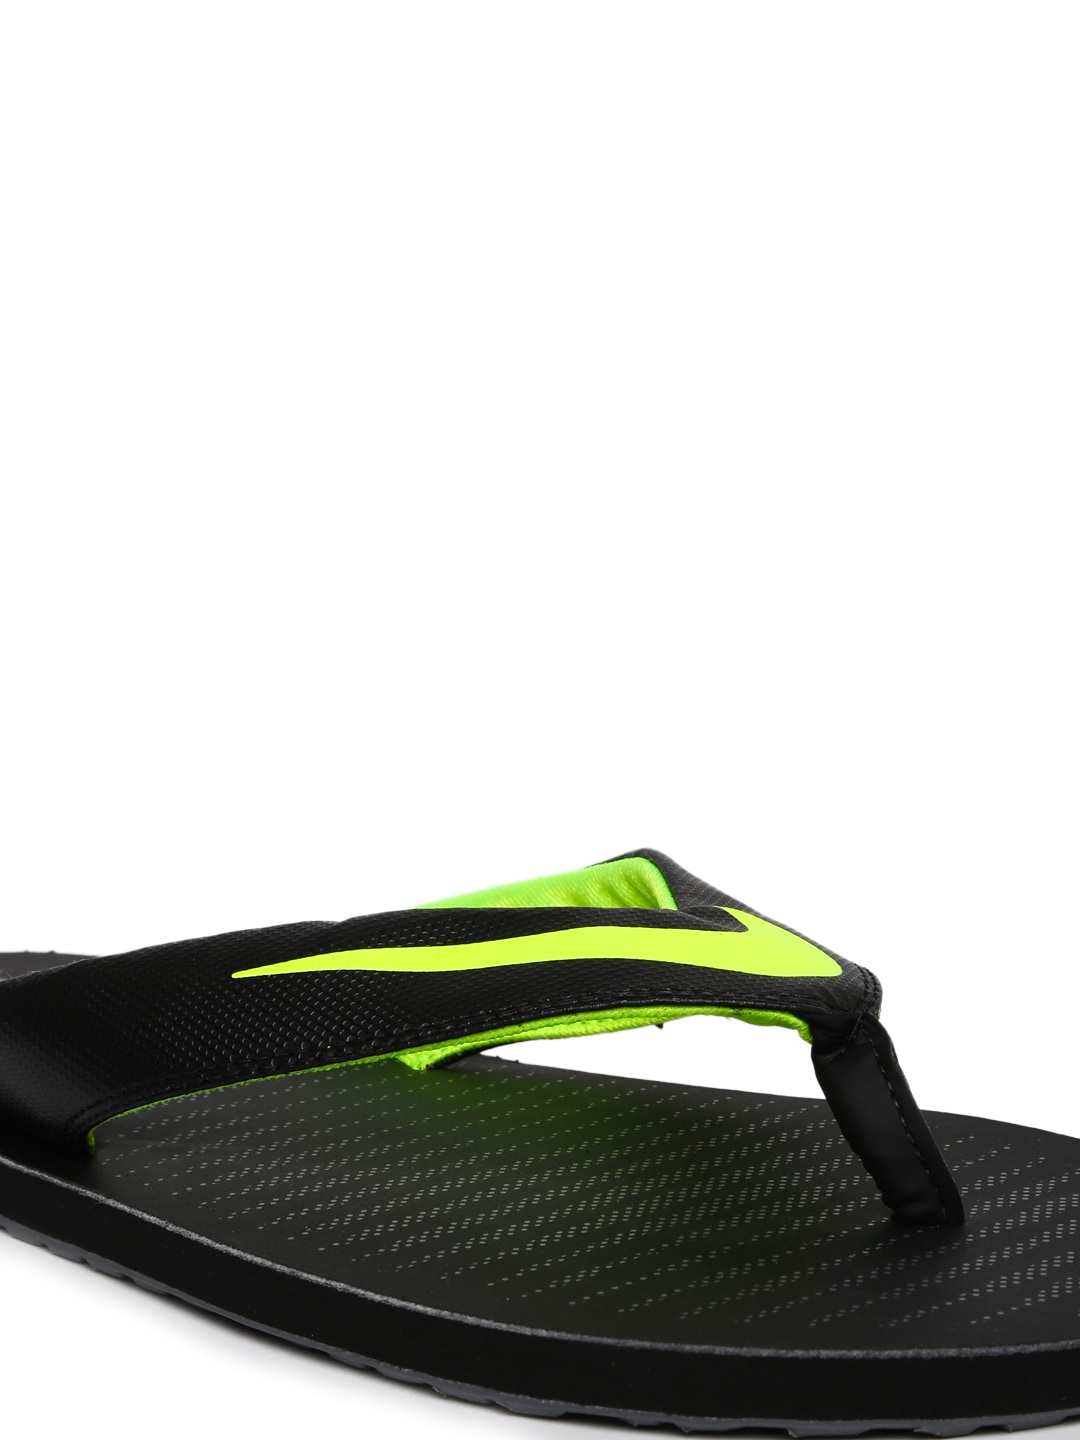 b8d0c386a030 Nike Sandals Flip Flops - Buy Nike Sandals Flip Flops online in India